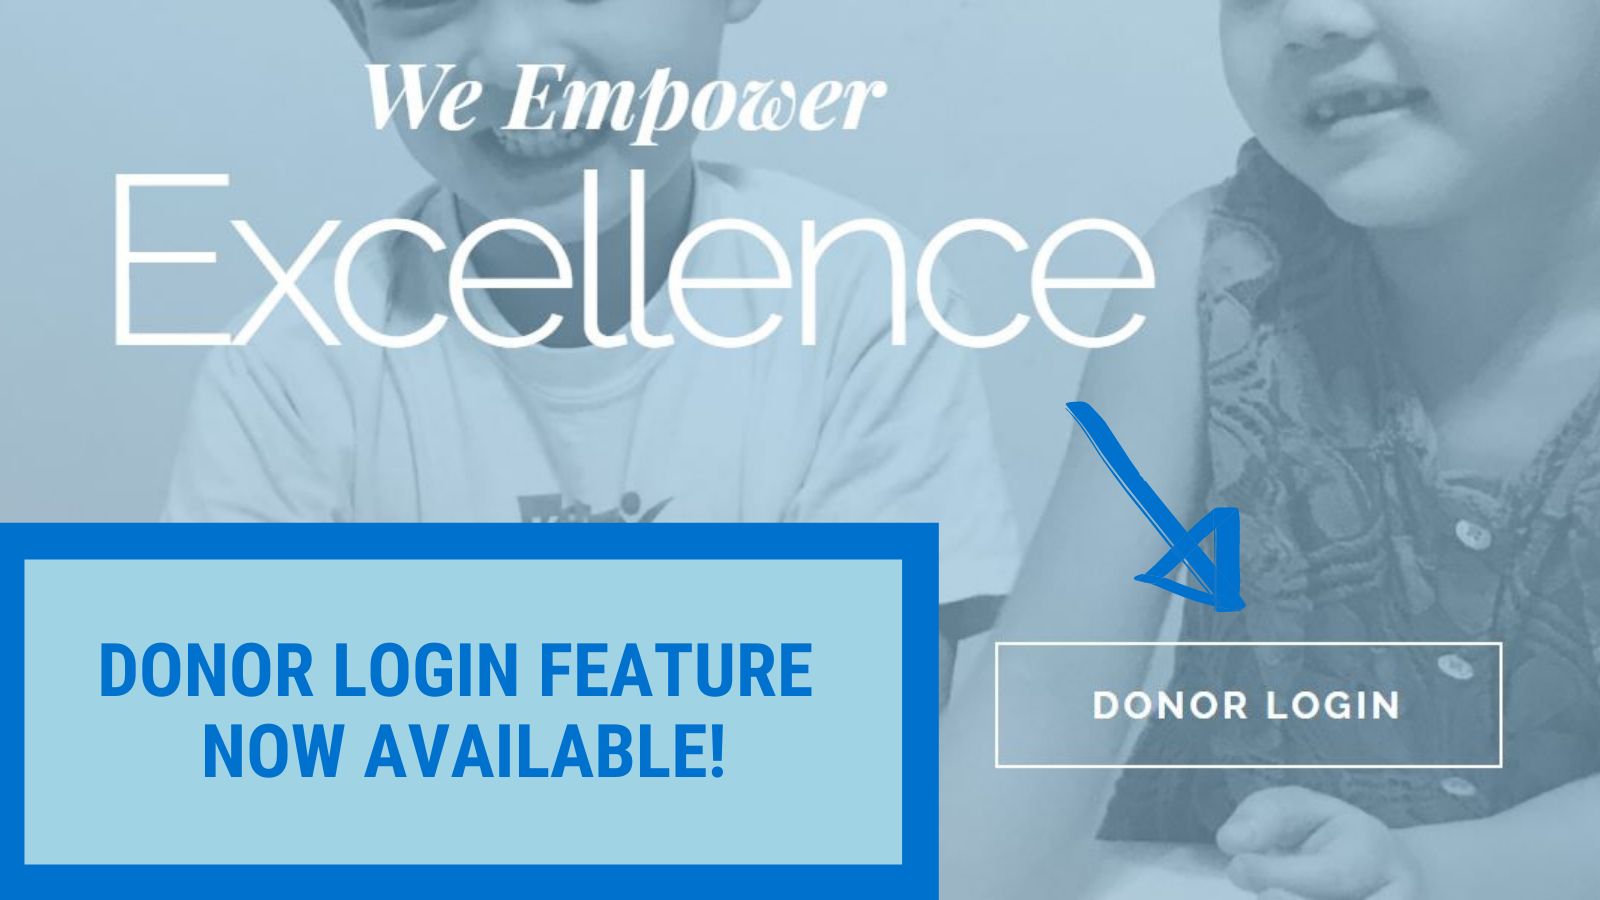 Donor Login Feature Now Available!